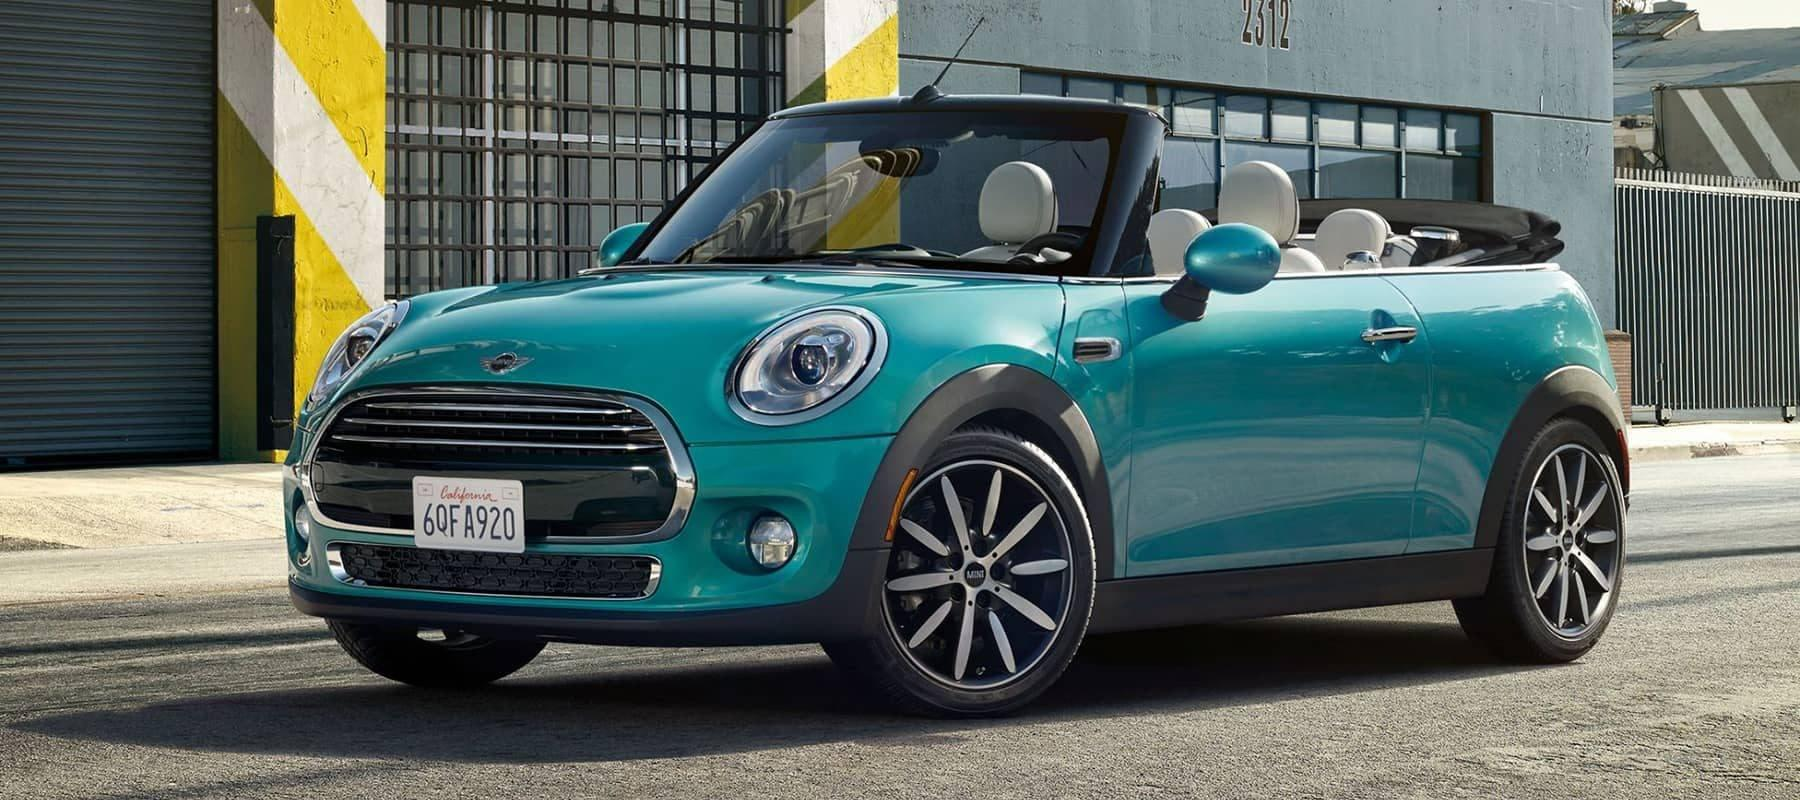 2018 Mini Convertible Vs 2018 Volkswagen Beetle Convertible Mini